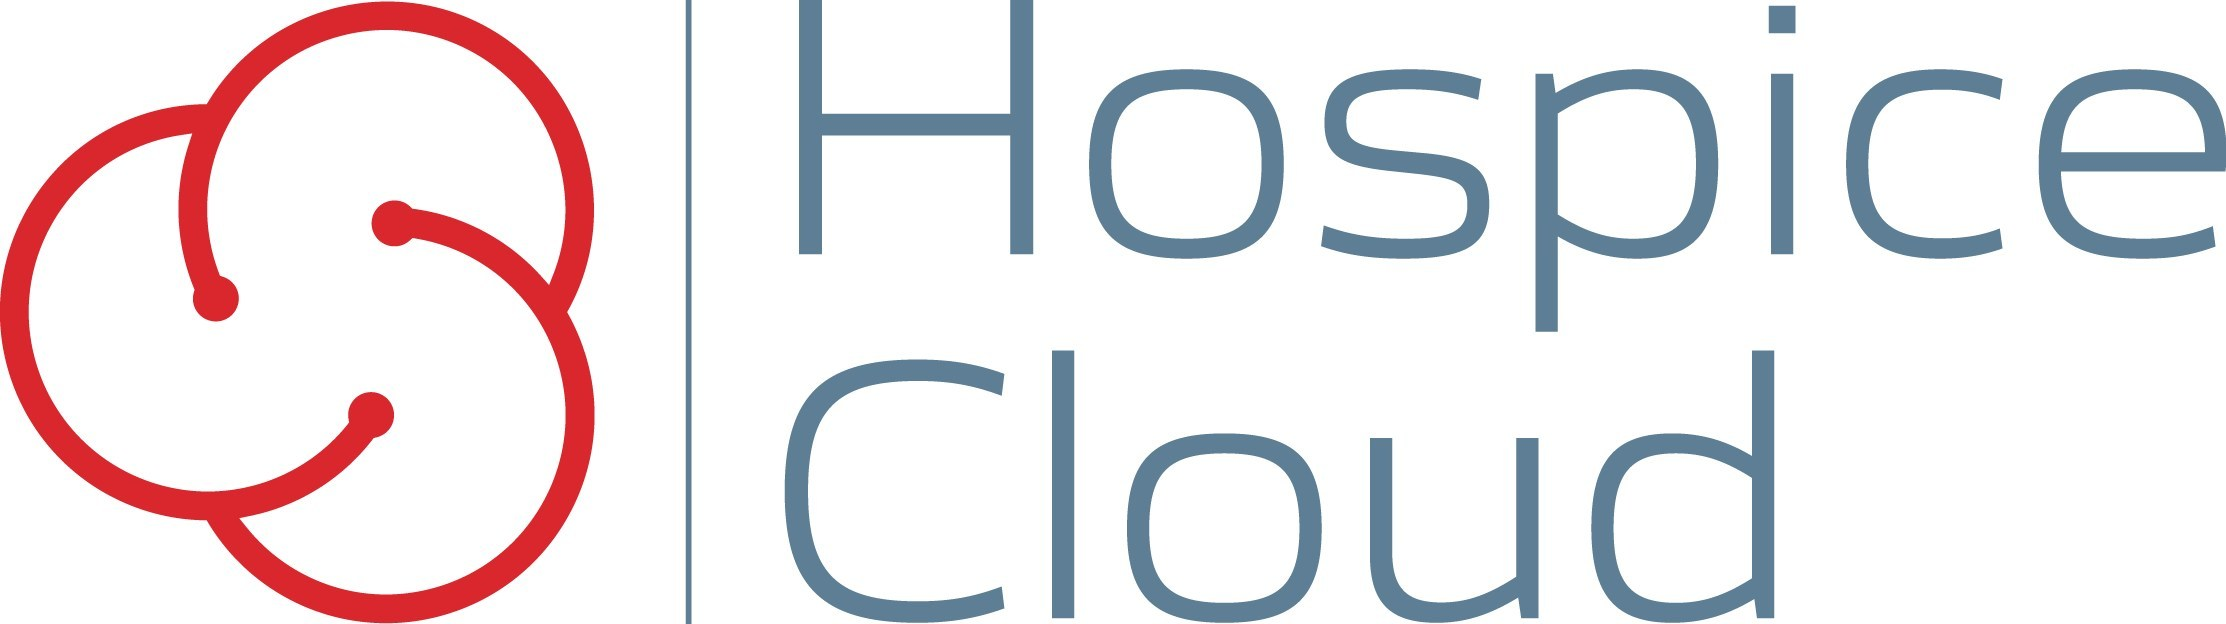 Genesis Healthcare Services To Merge With Hospice Cloud A